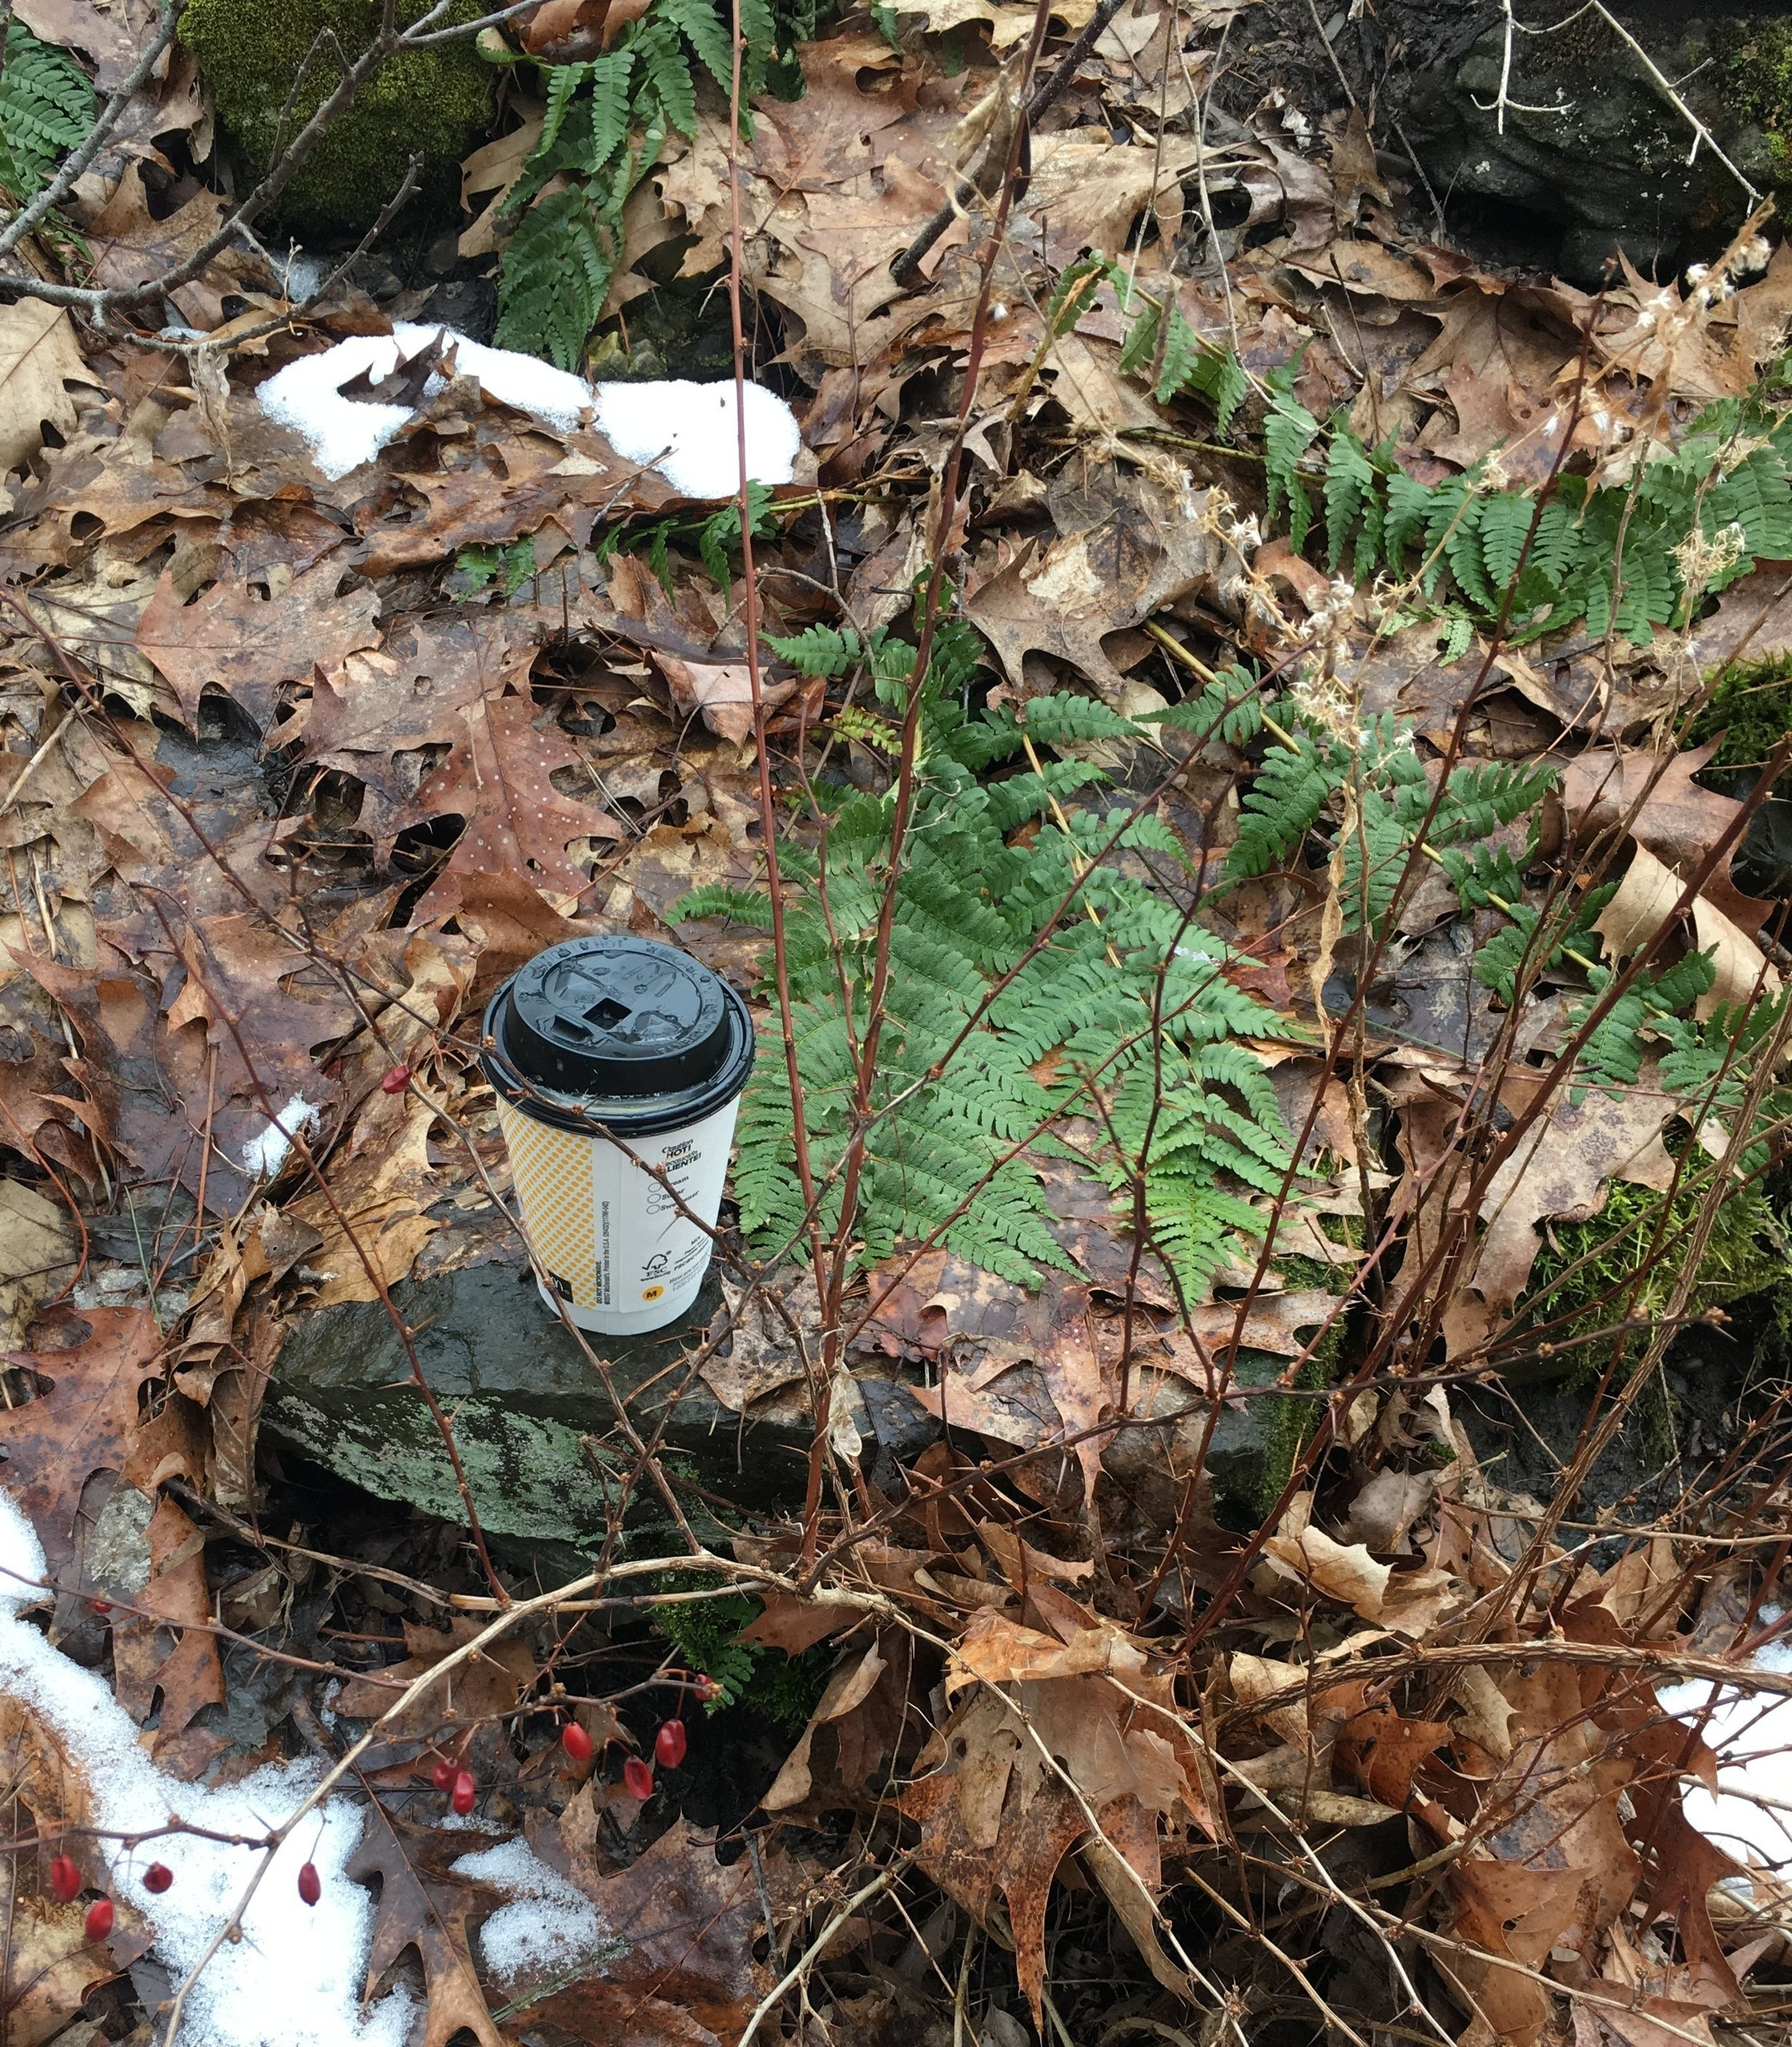 Trash on a hiking trail in a state park